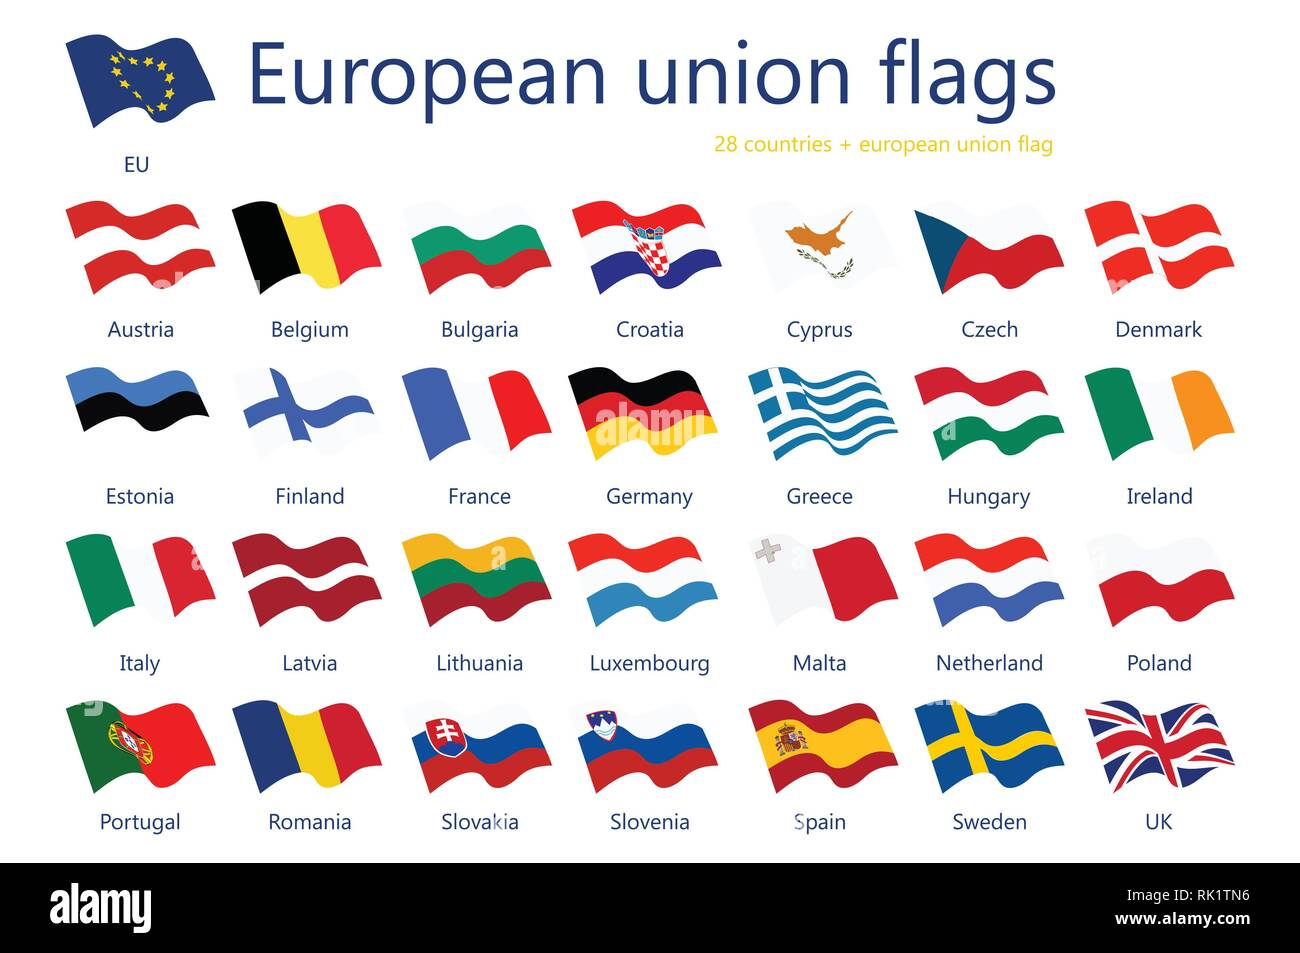 Vector illustration set of european union flags with names. 29 flags+ eu flag. - Stock Image